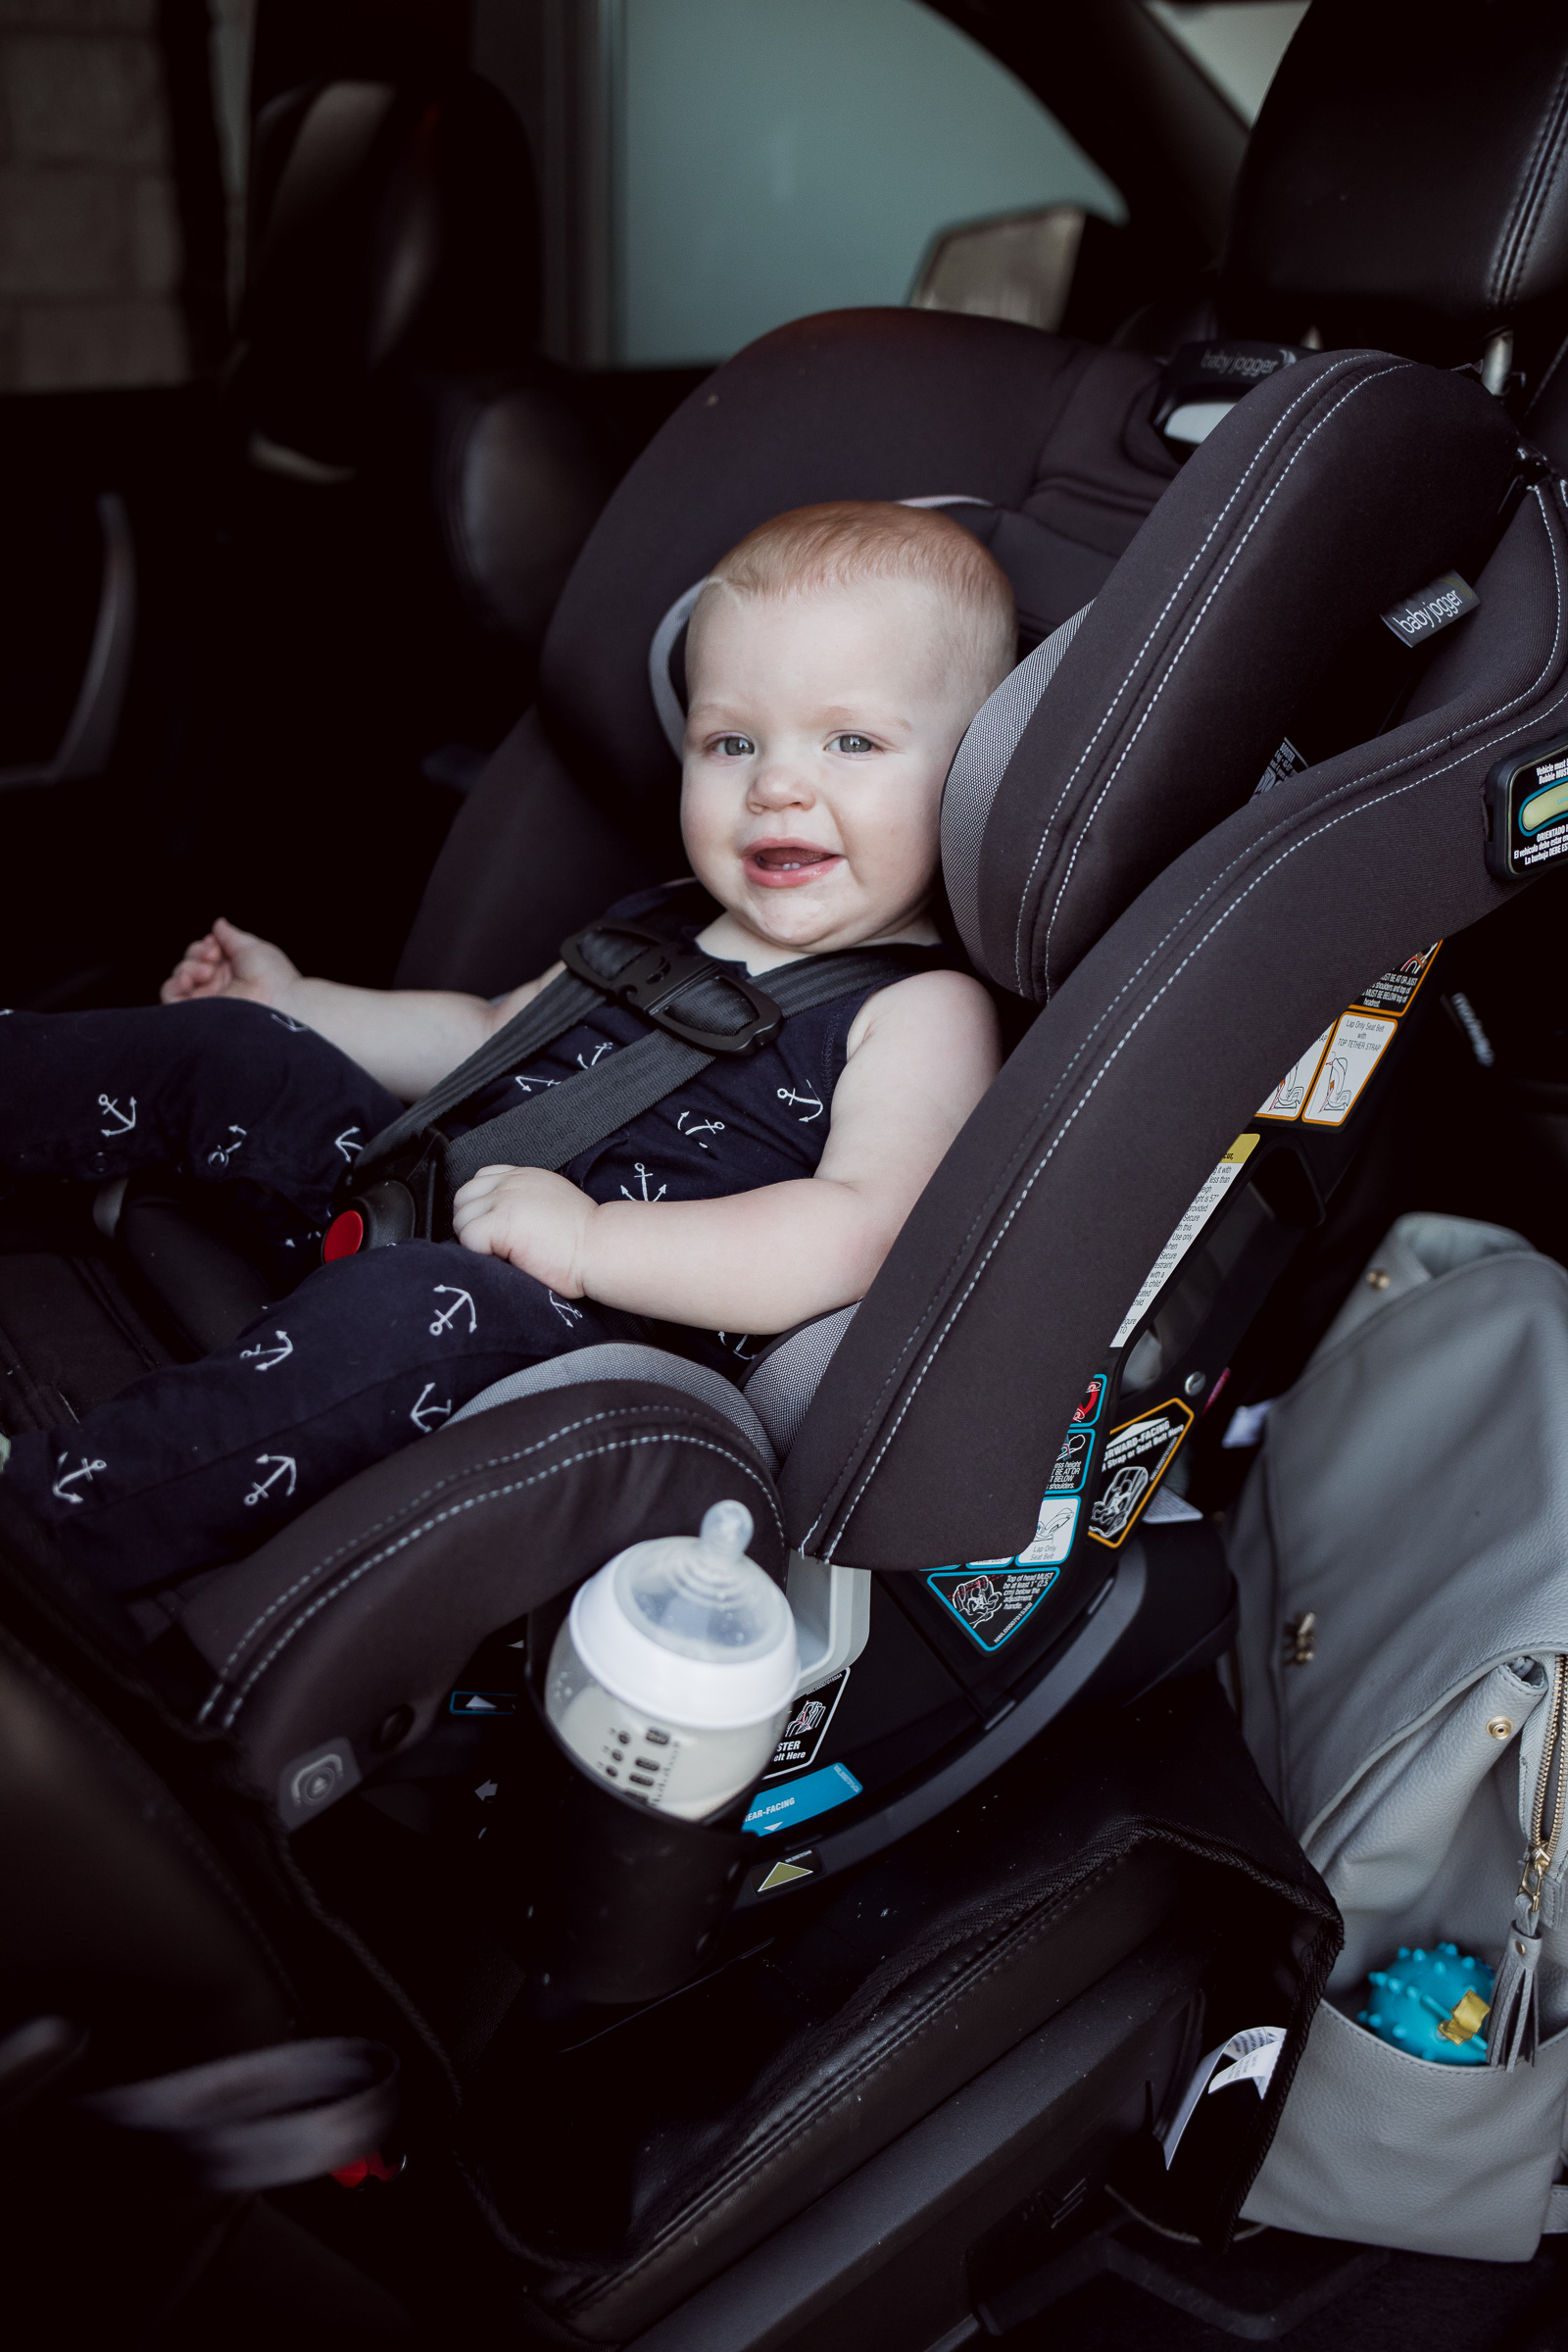 Houston blogger Elly Brown shares her thoughts on the Baby Jogger City View Car Seat